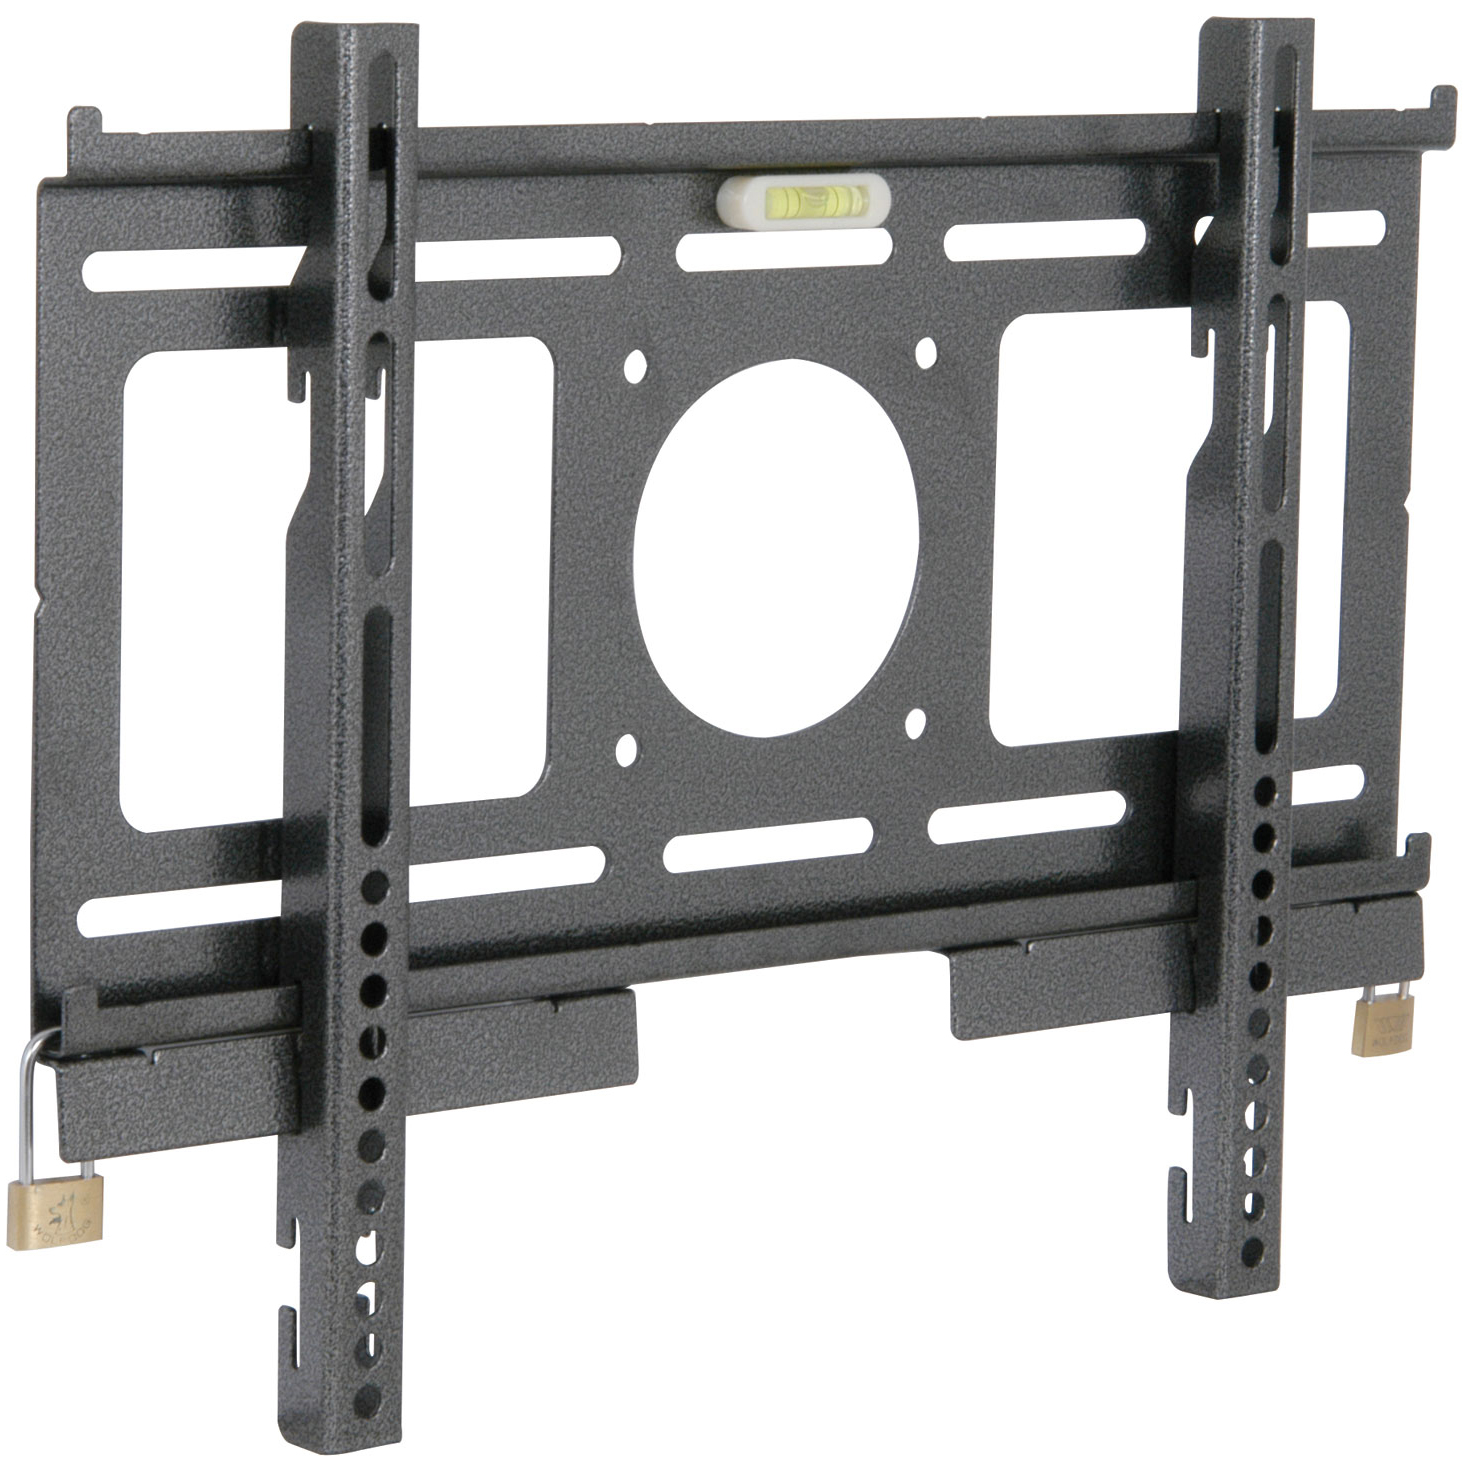 Fixed Wall Bracket for LED TV Screens%